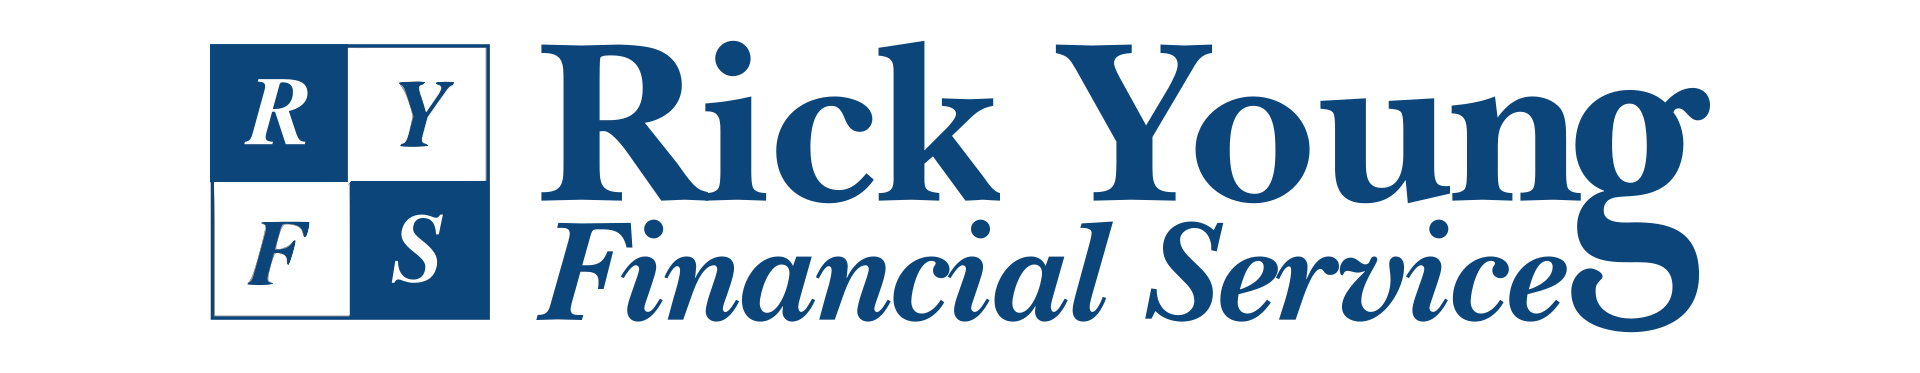 Rick Young Financial Services